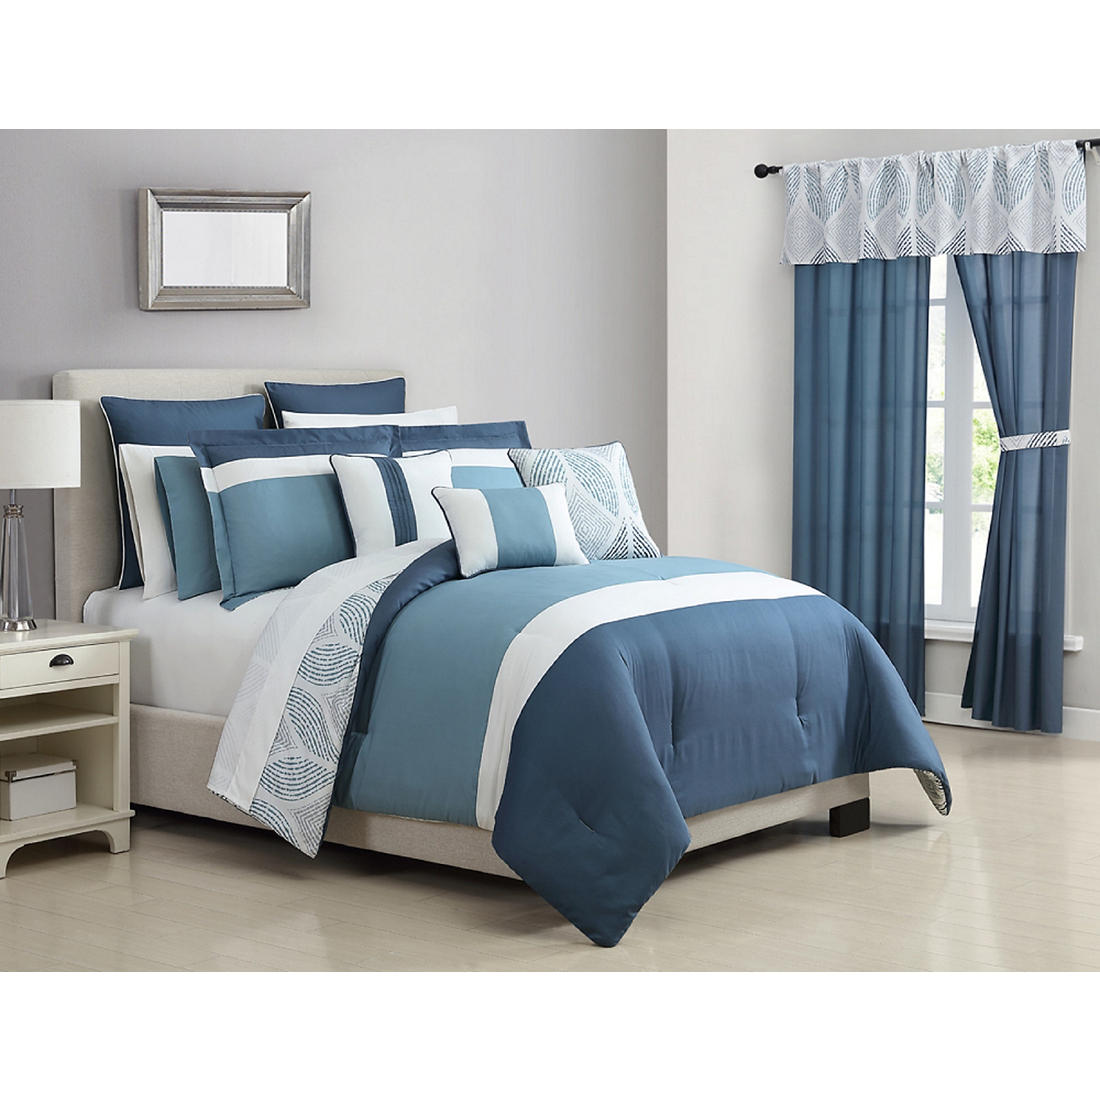 Queen Size Bedspreads On Sale.Somerville Home Collection Jessica Queen Size Comforter Set